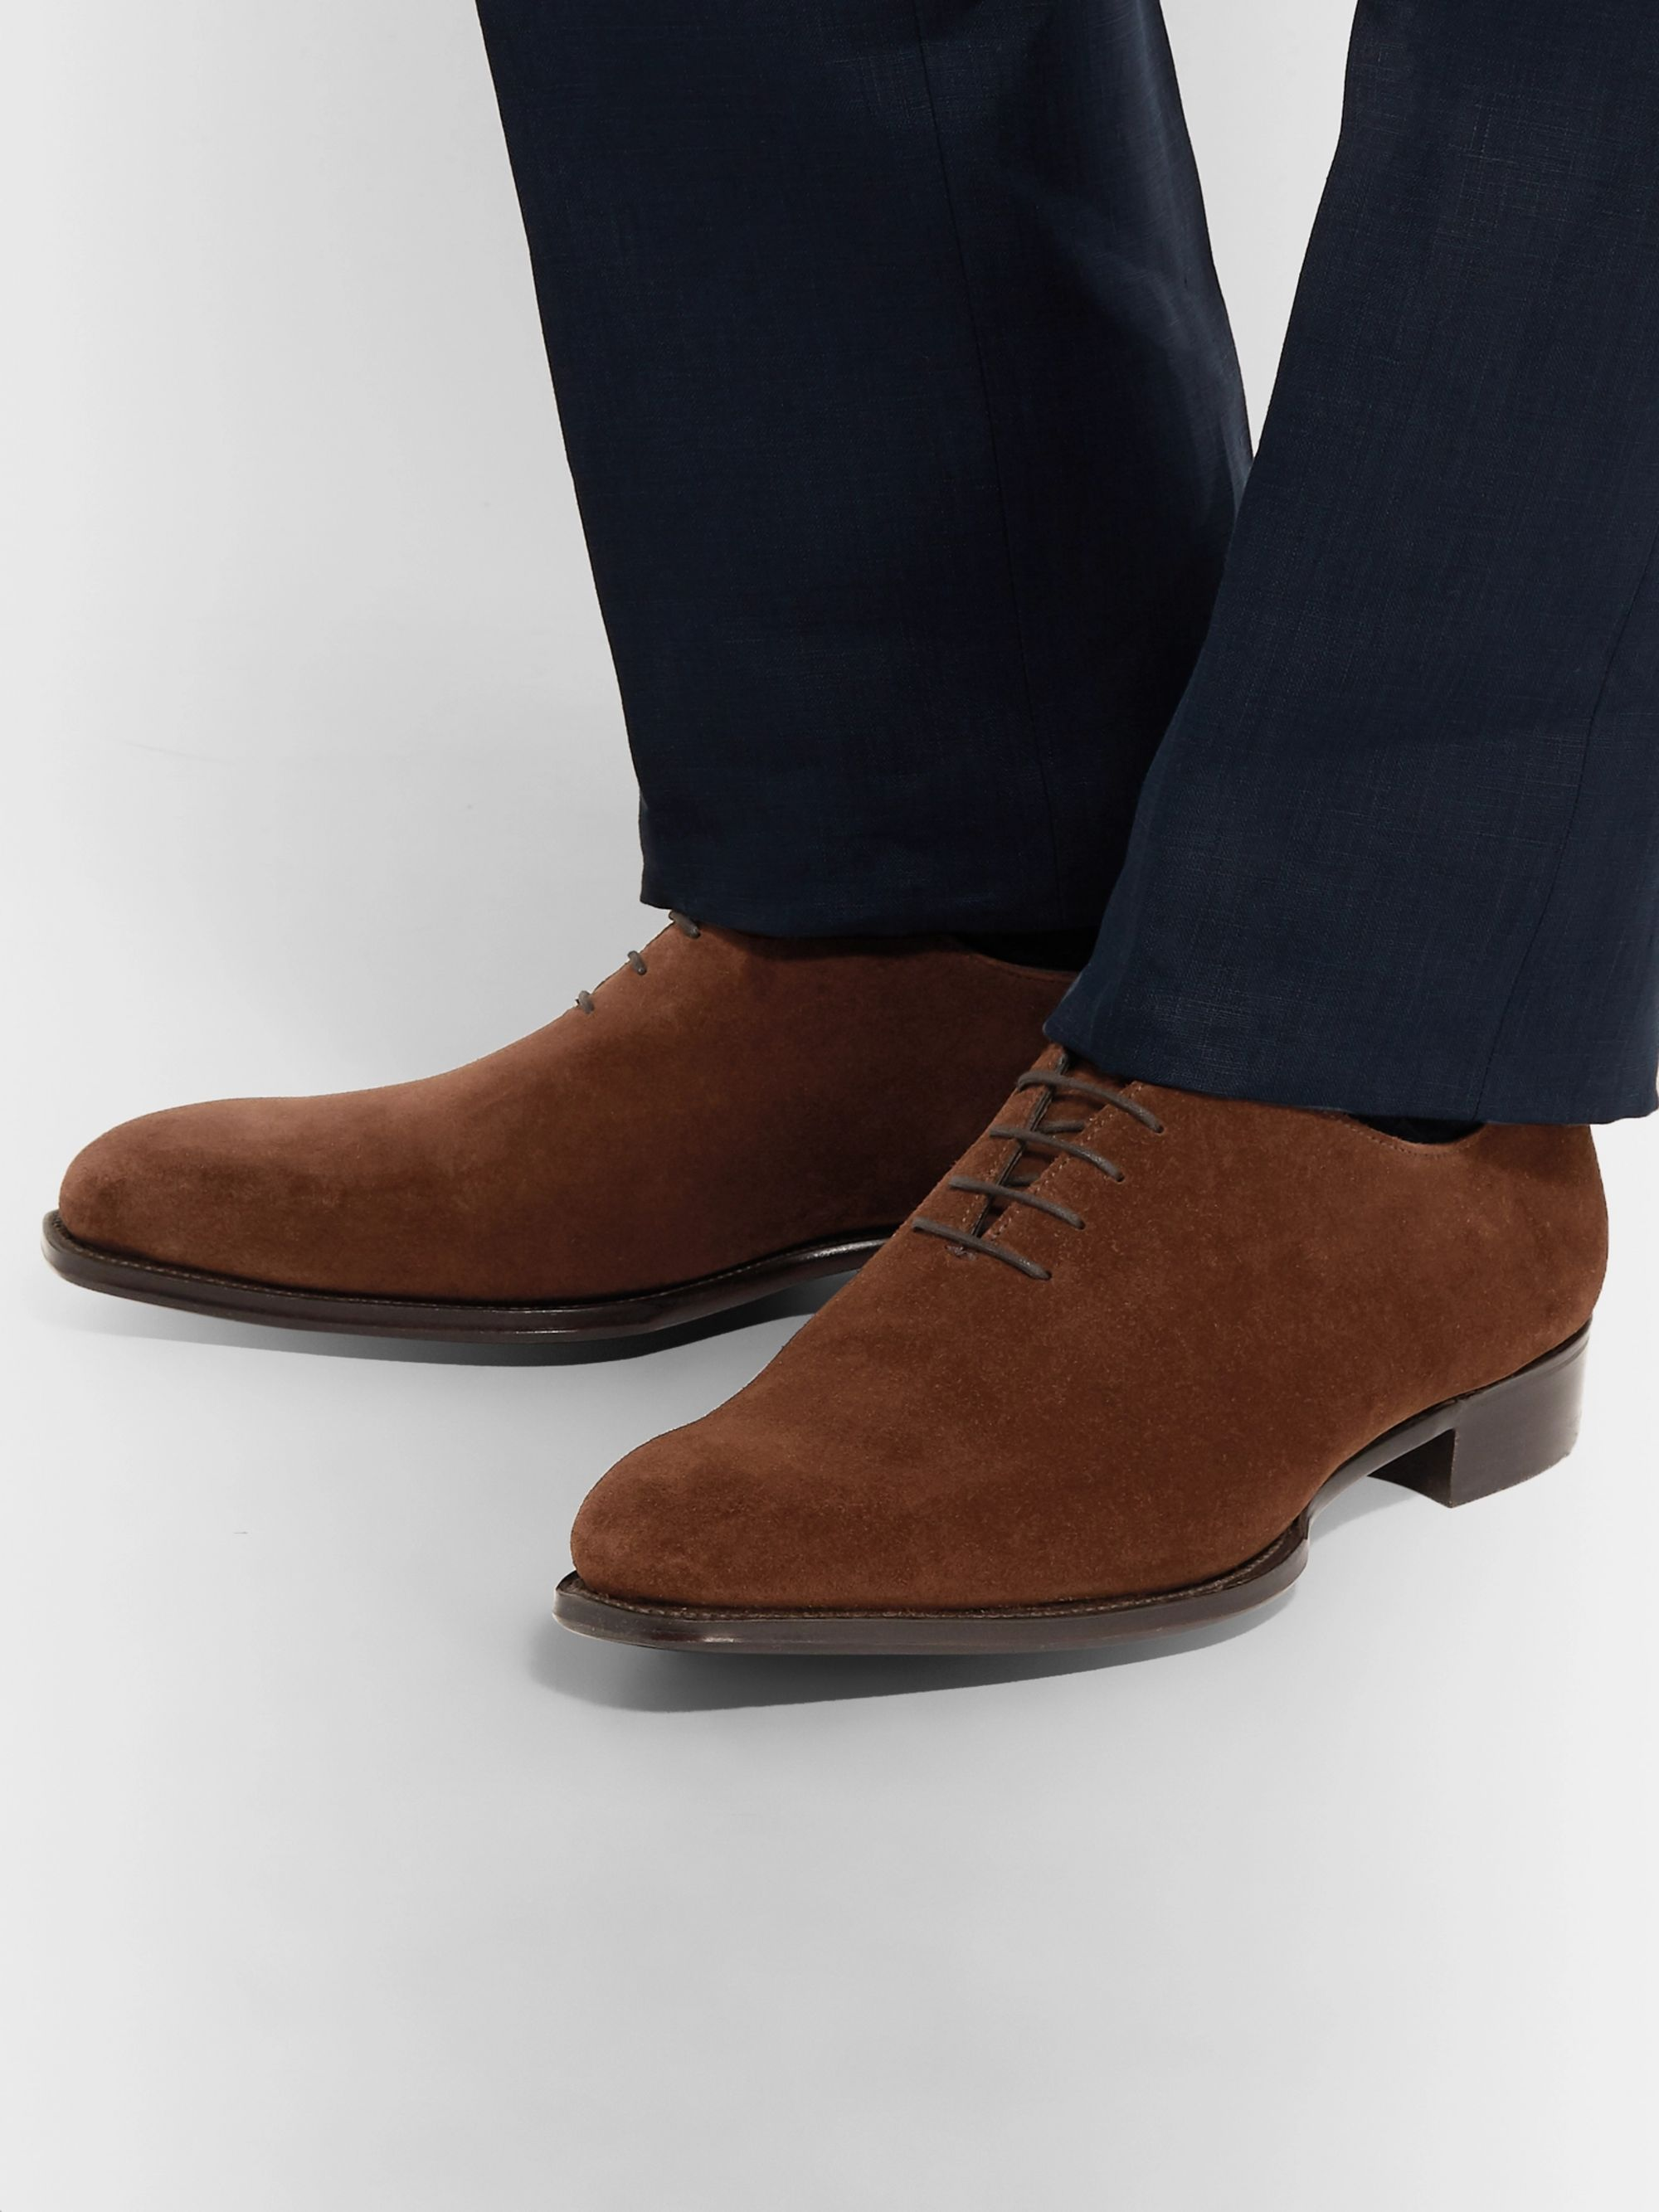 Kingsman + George Cleverley Whole-Cut Suede Oxford Shoes